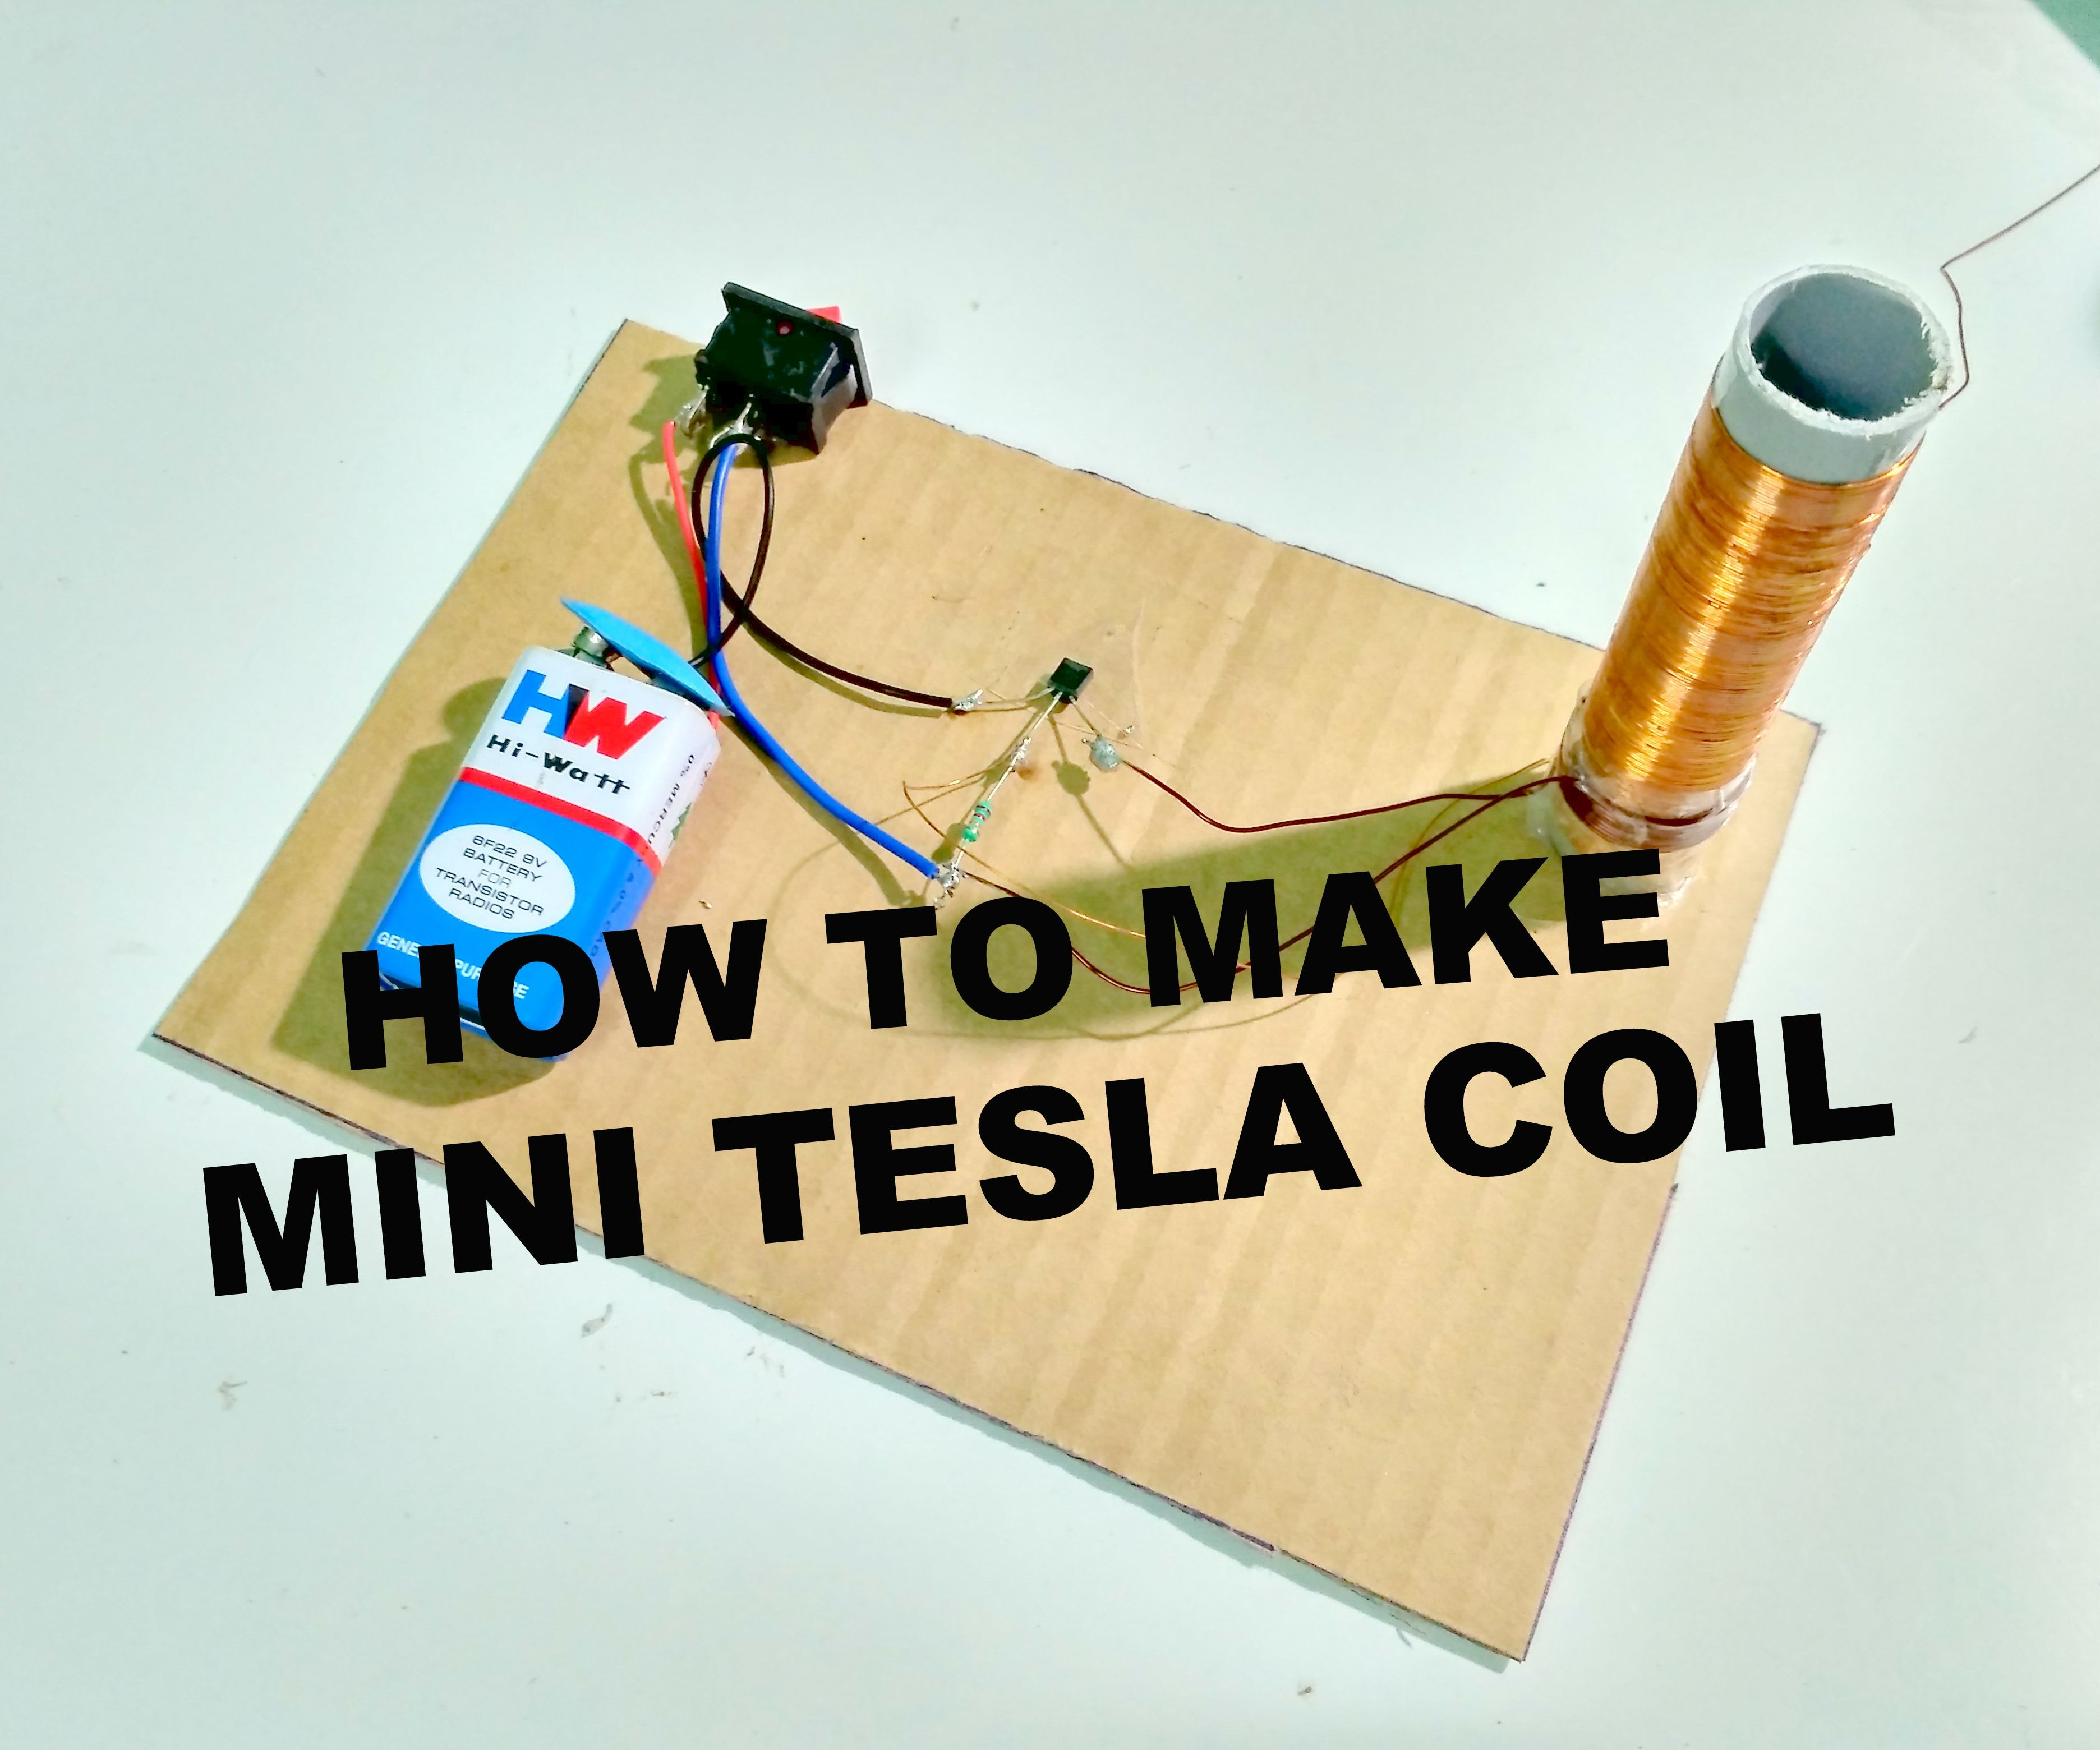 How to Make a Miniature Tesla Coil: 3 Steps (with Pictures)